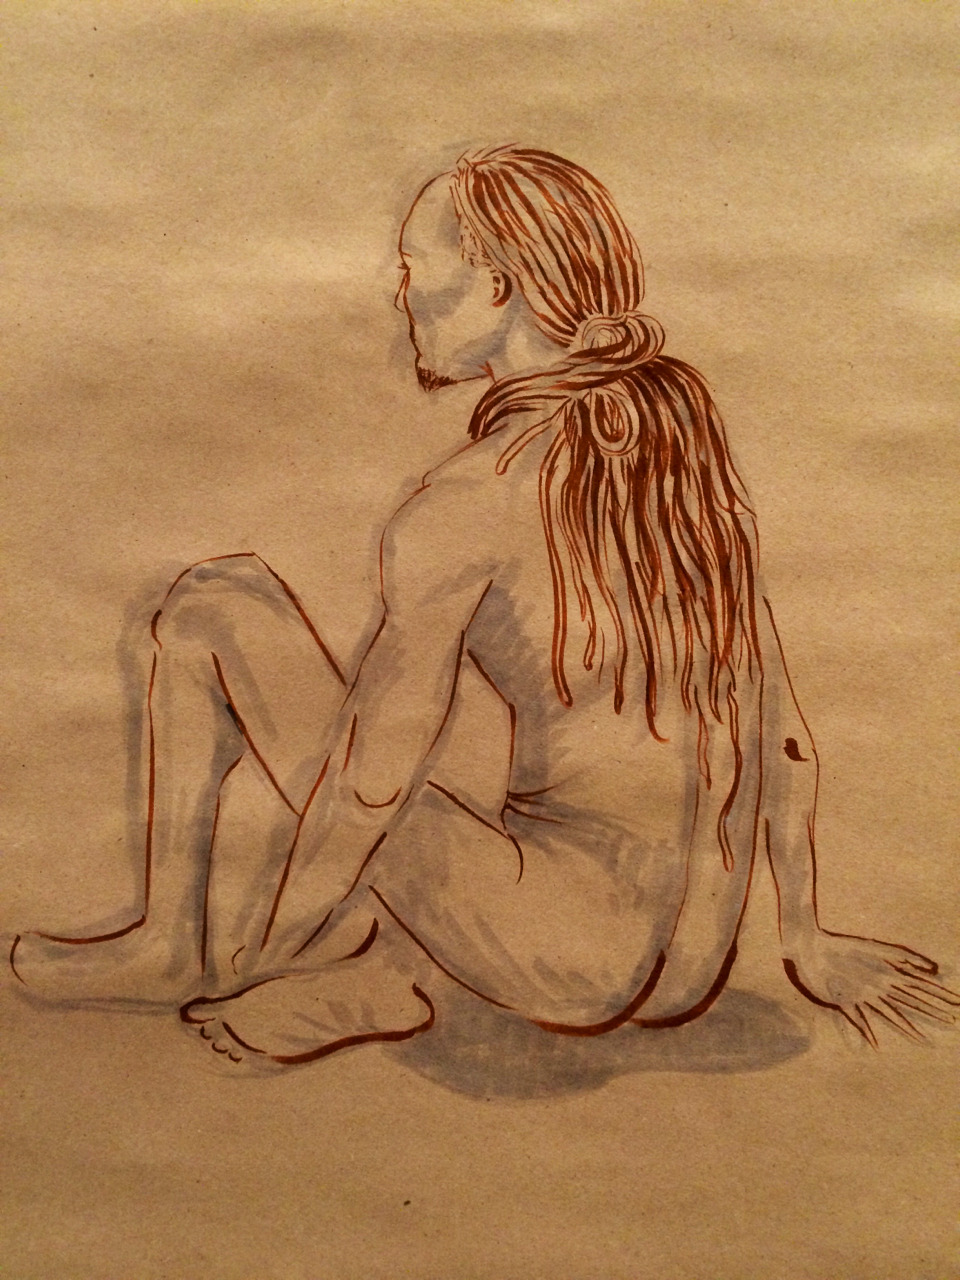 Figure Sketch II   2014. Markers on paper.